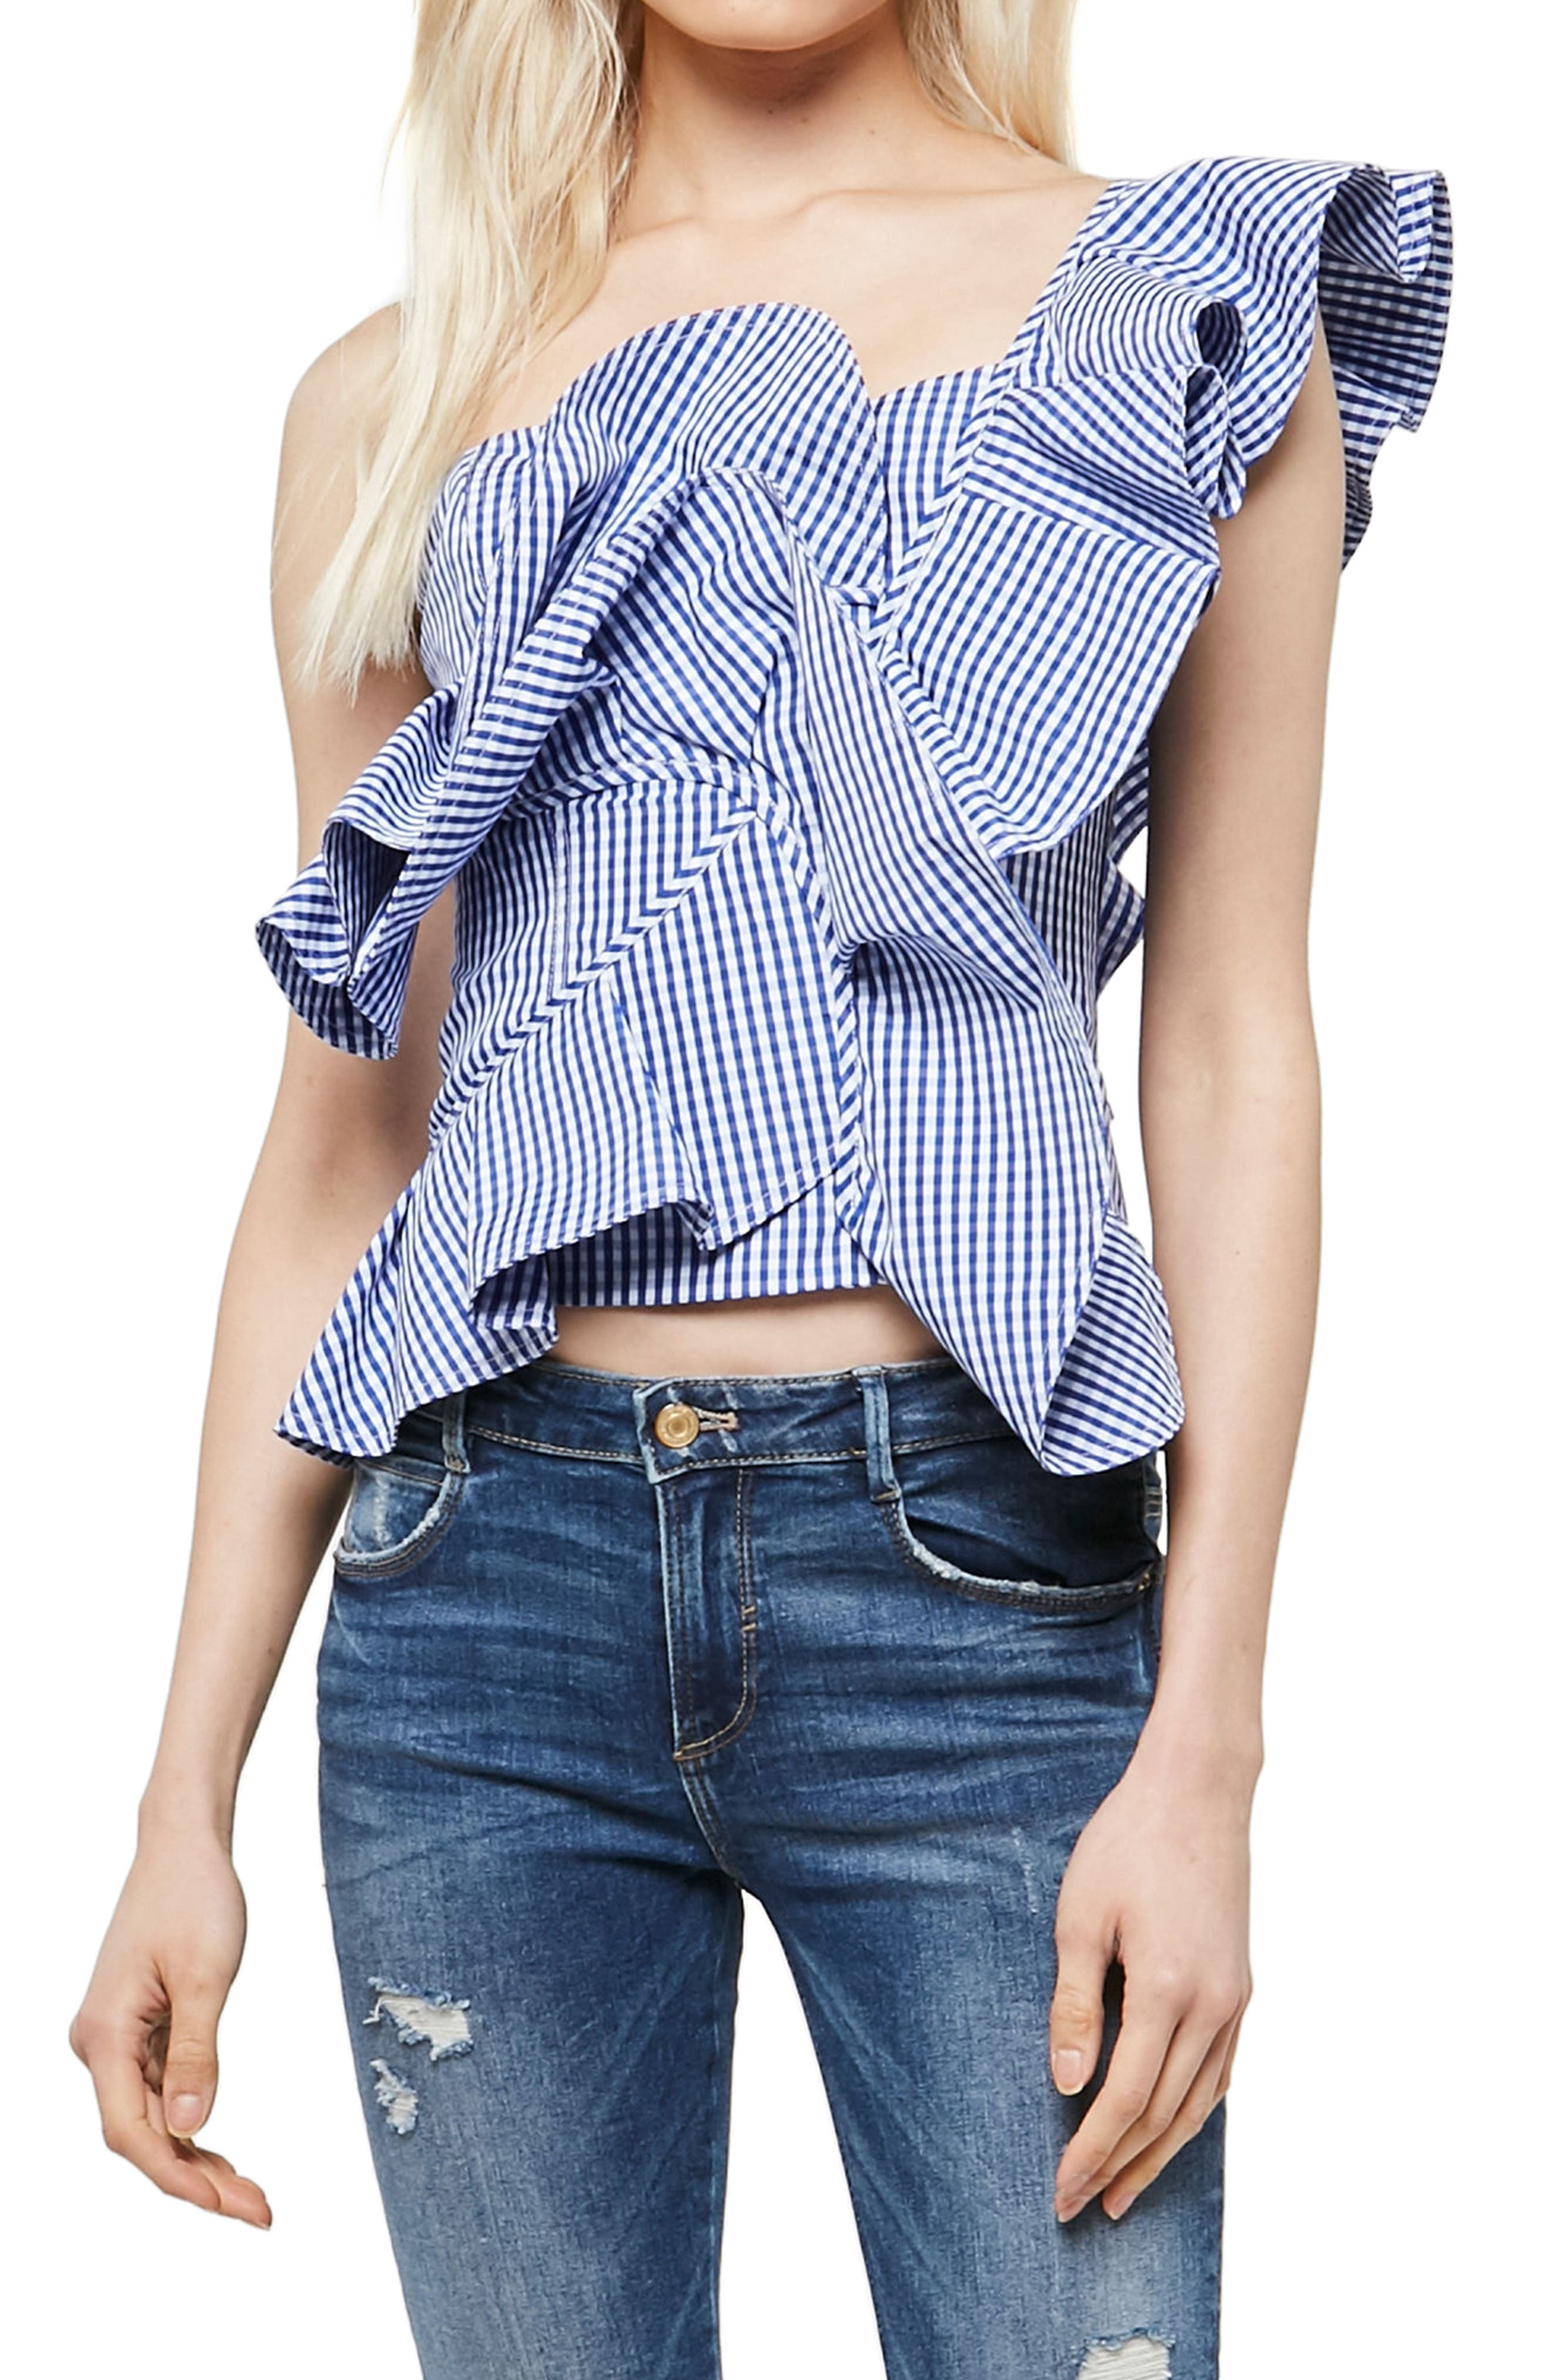 Alpha & Omega Gingham One-Shoulder Blouse,                             Main thumbnail 1, color,                             Royal